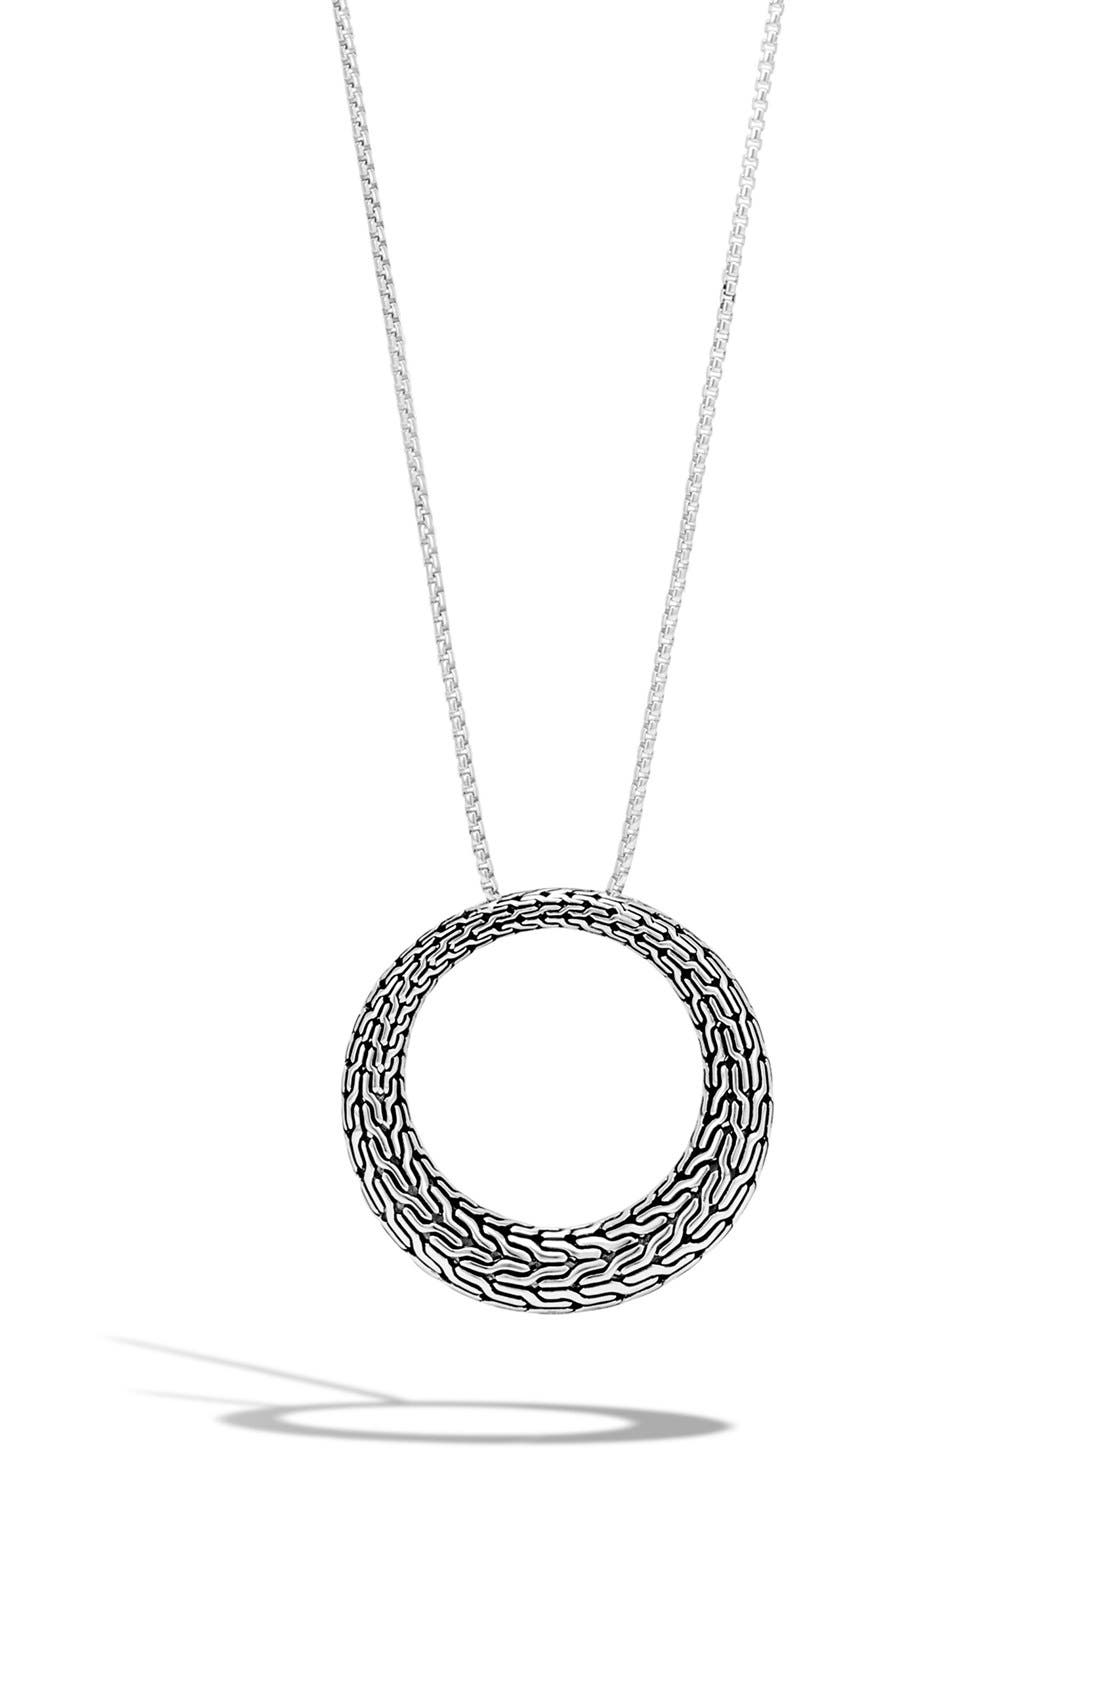 Classic Chain Circle Pendant Necklace,                             Main thumbnail 1, color,                             SILVER